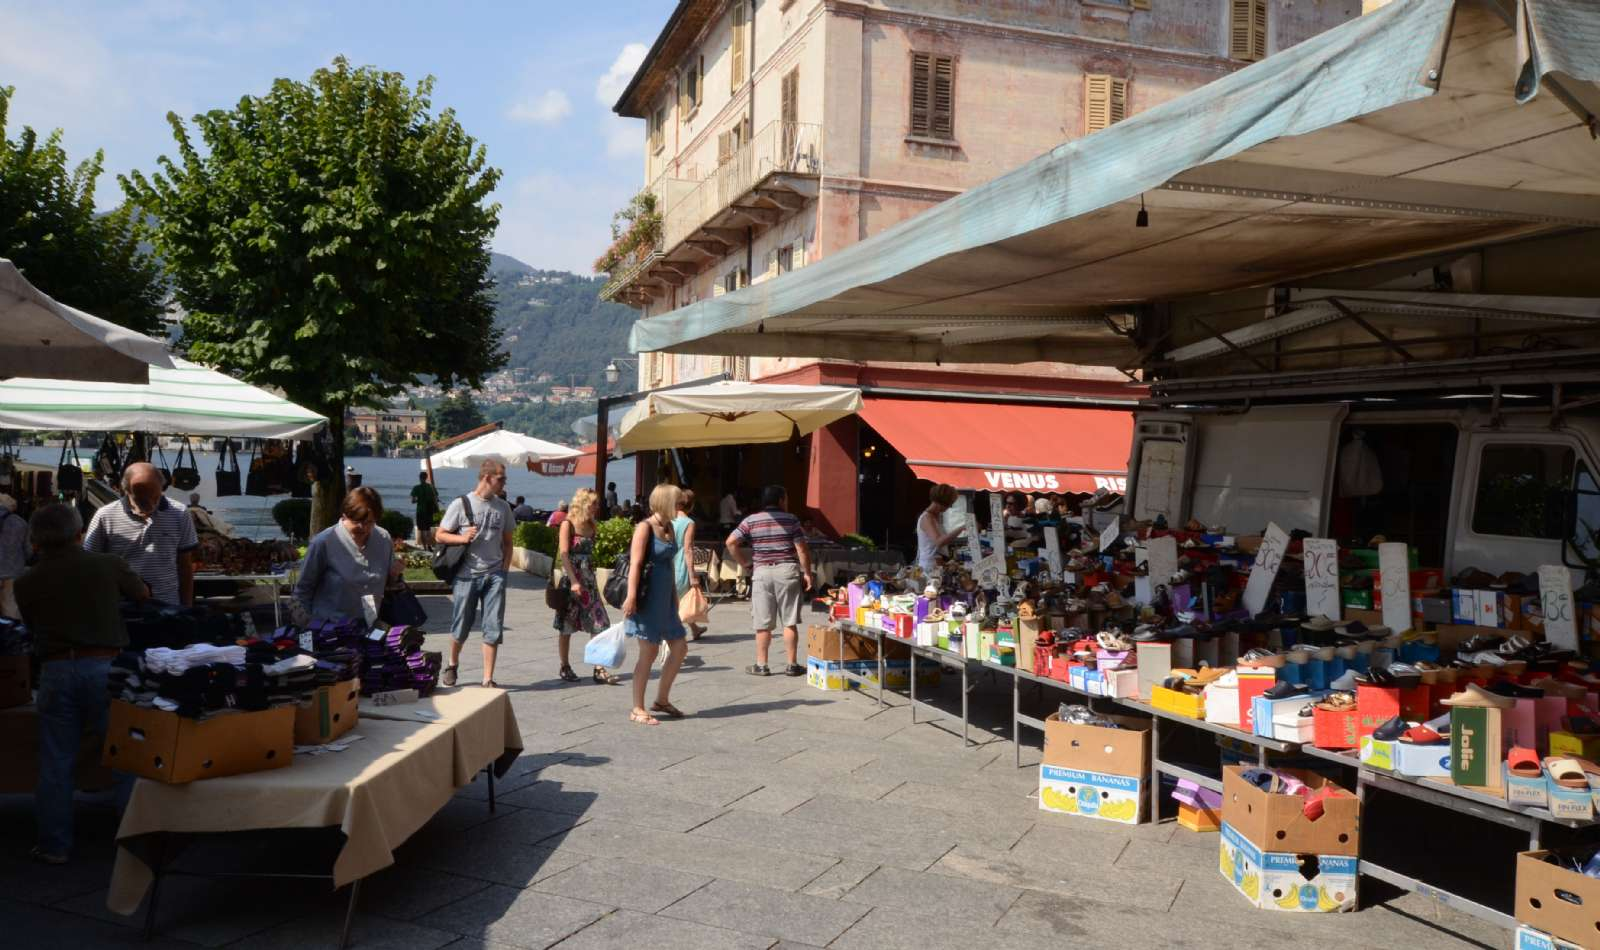 The town's weekly market day